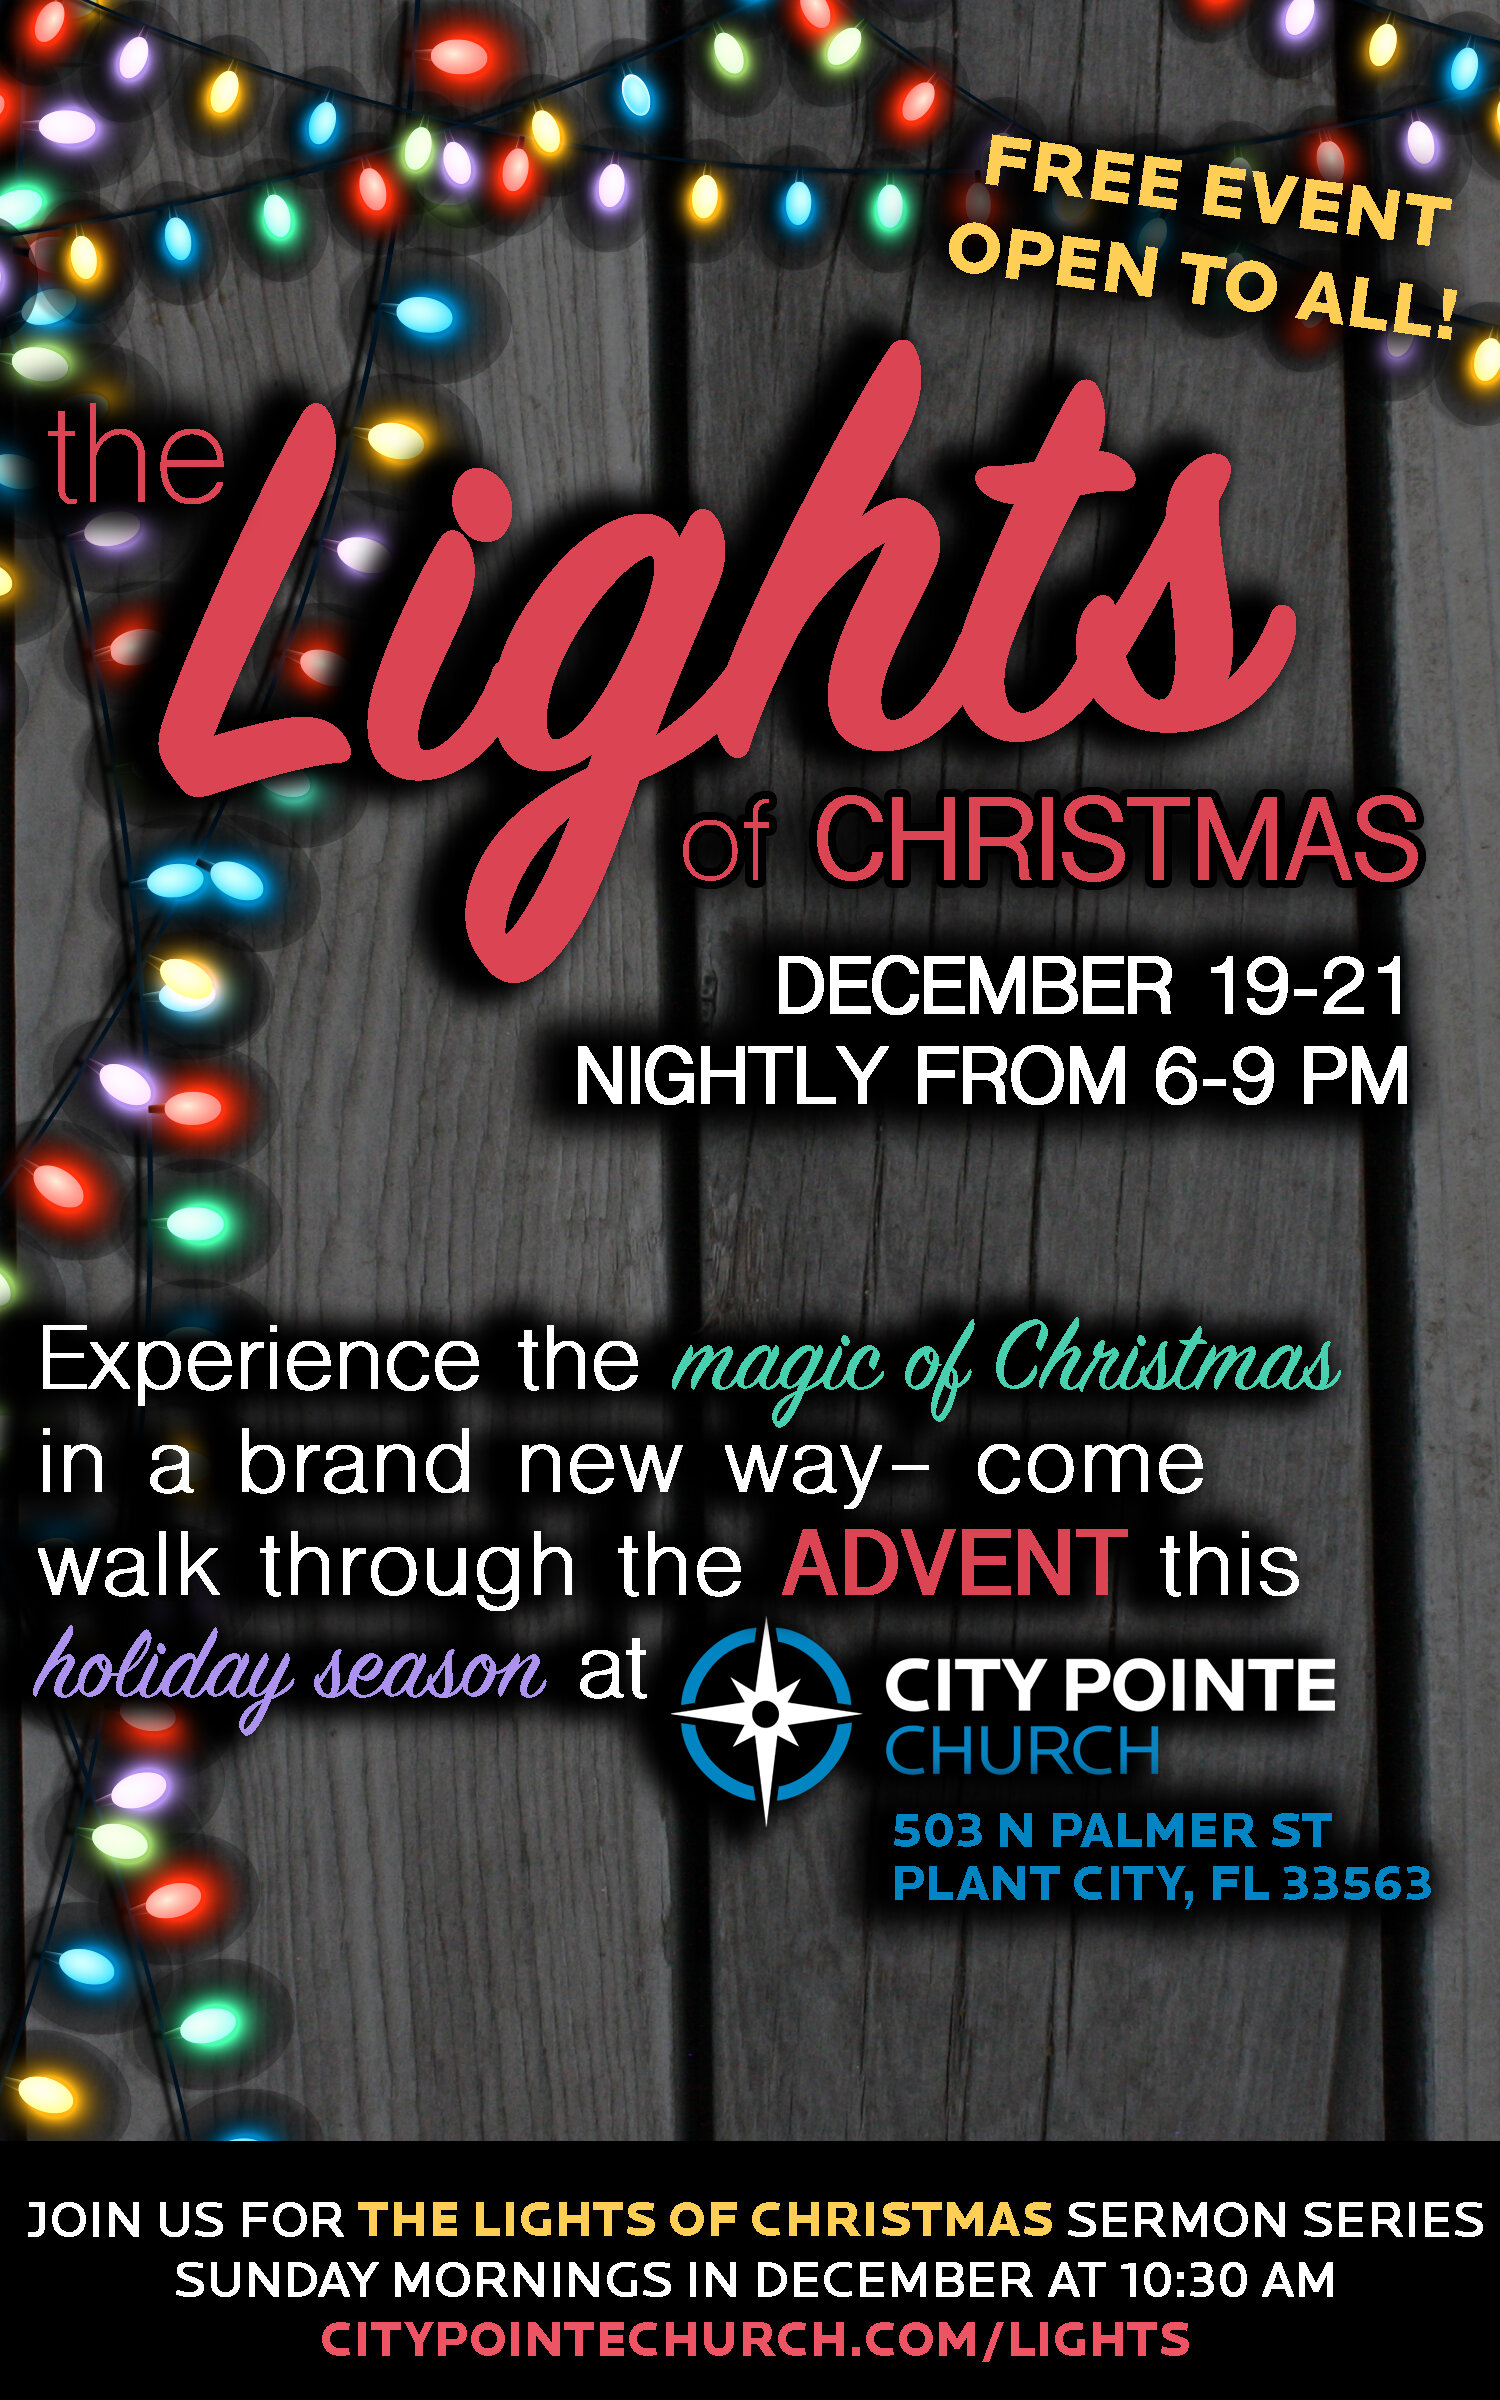 The Lights of Christmas - Experience the magic of Christmas in a brand new way- come walk through the Advent this holiday season at City Pointe Church!